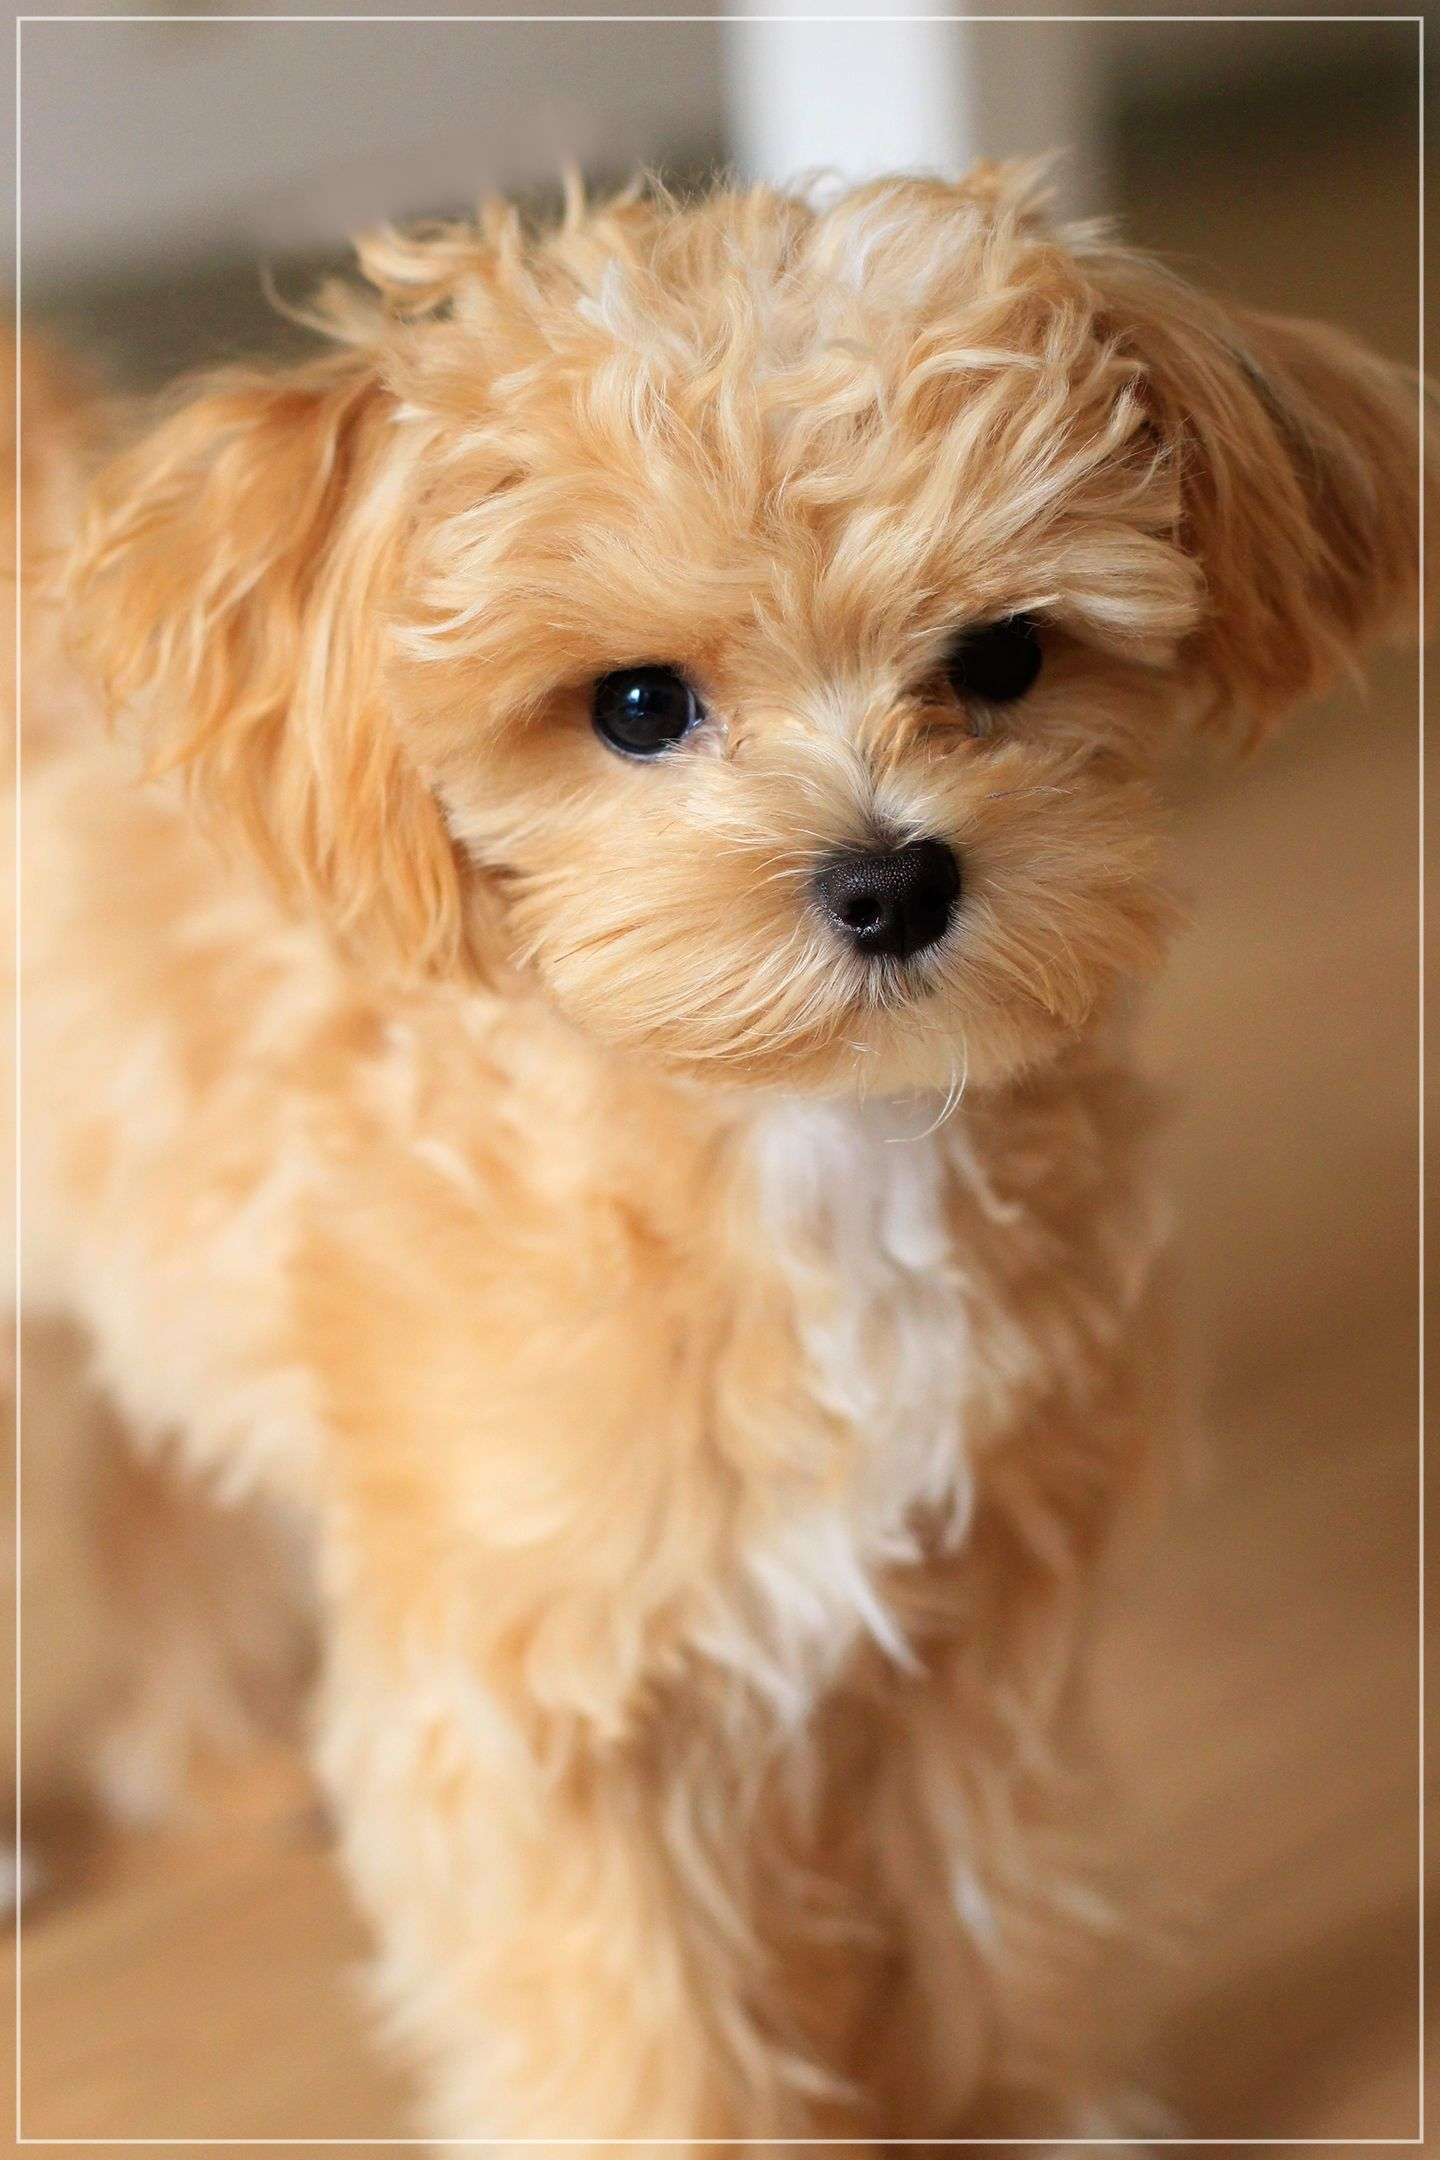 Maltipoo Maltese/Poodle Mix Maltipoo dog, Cute dogs